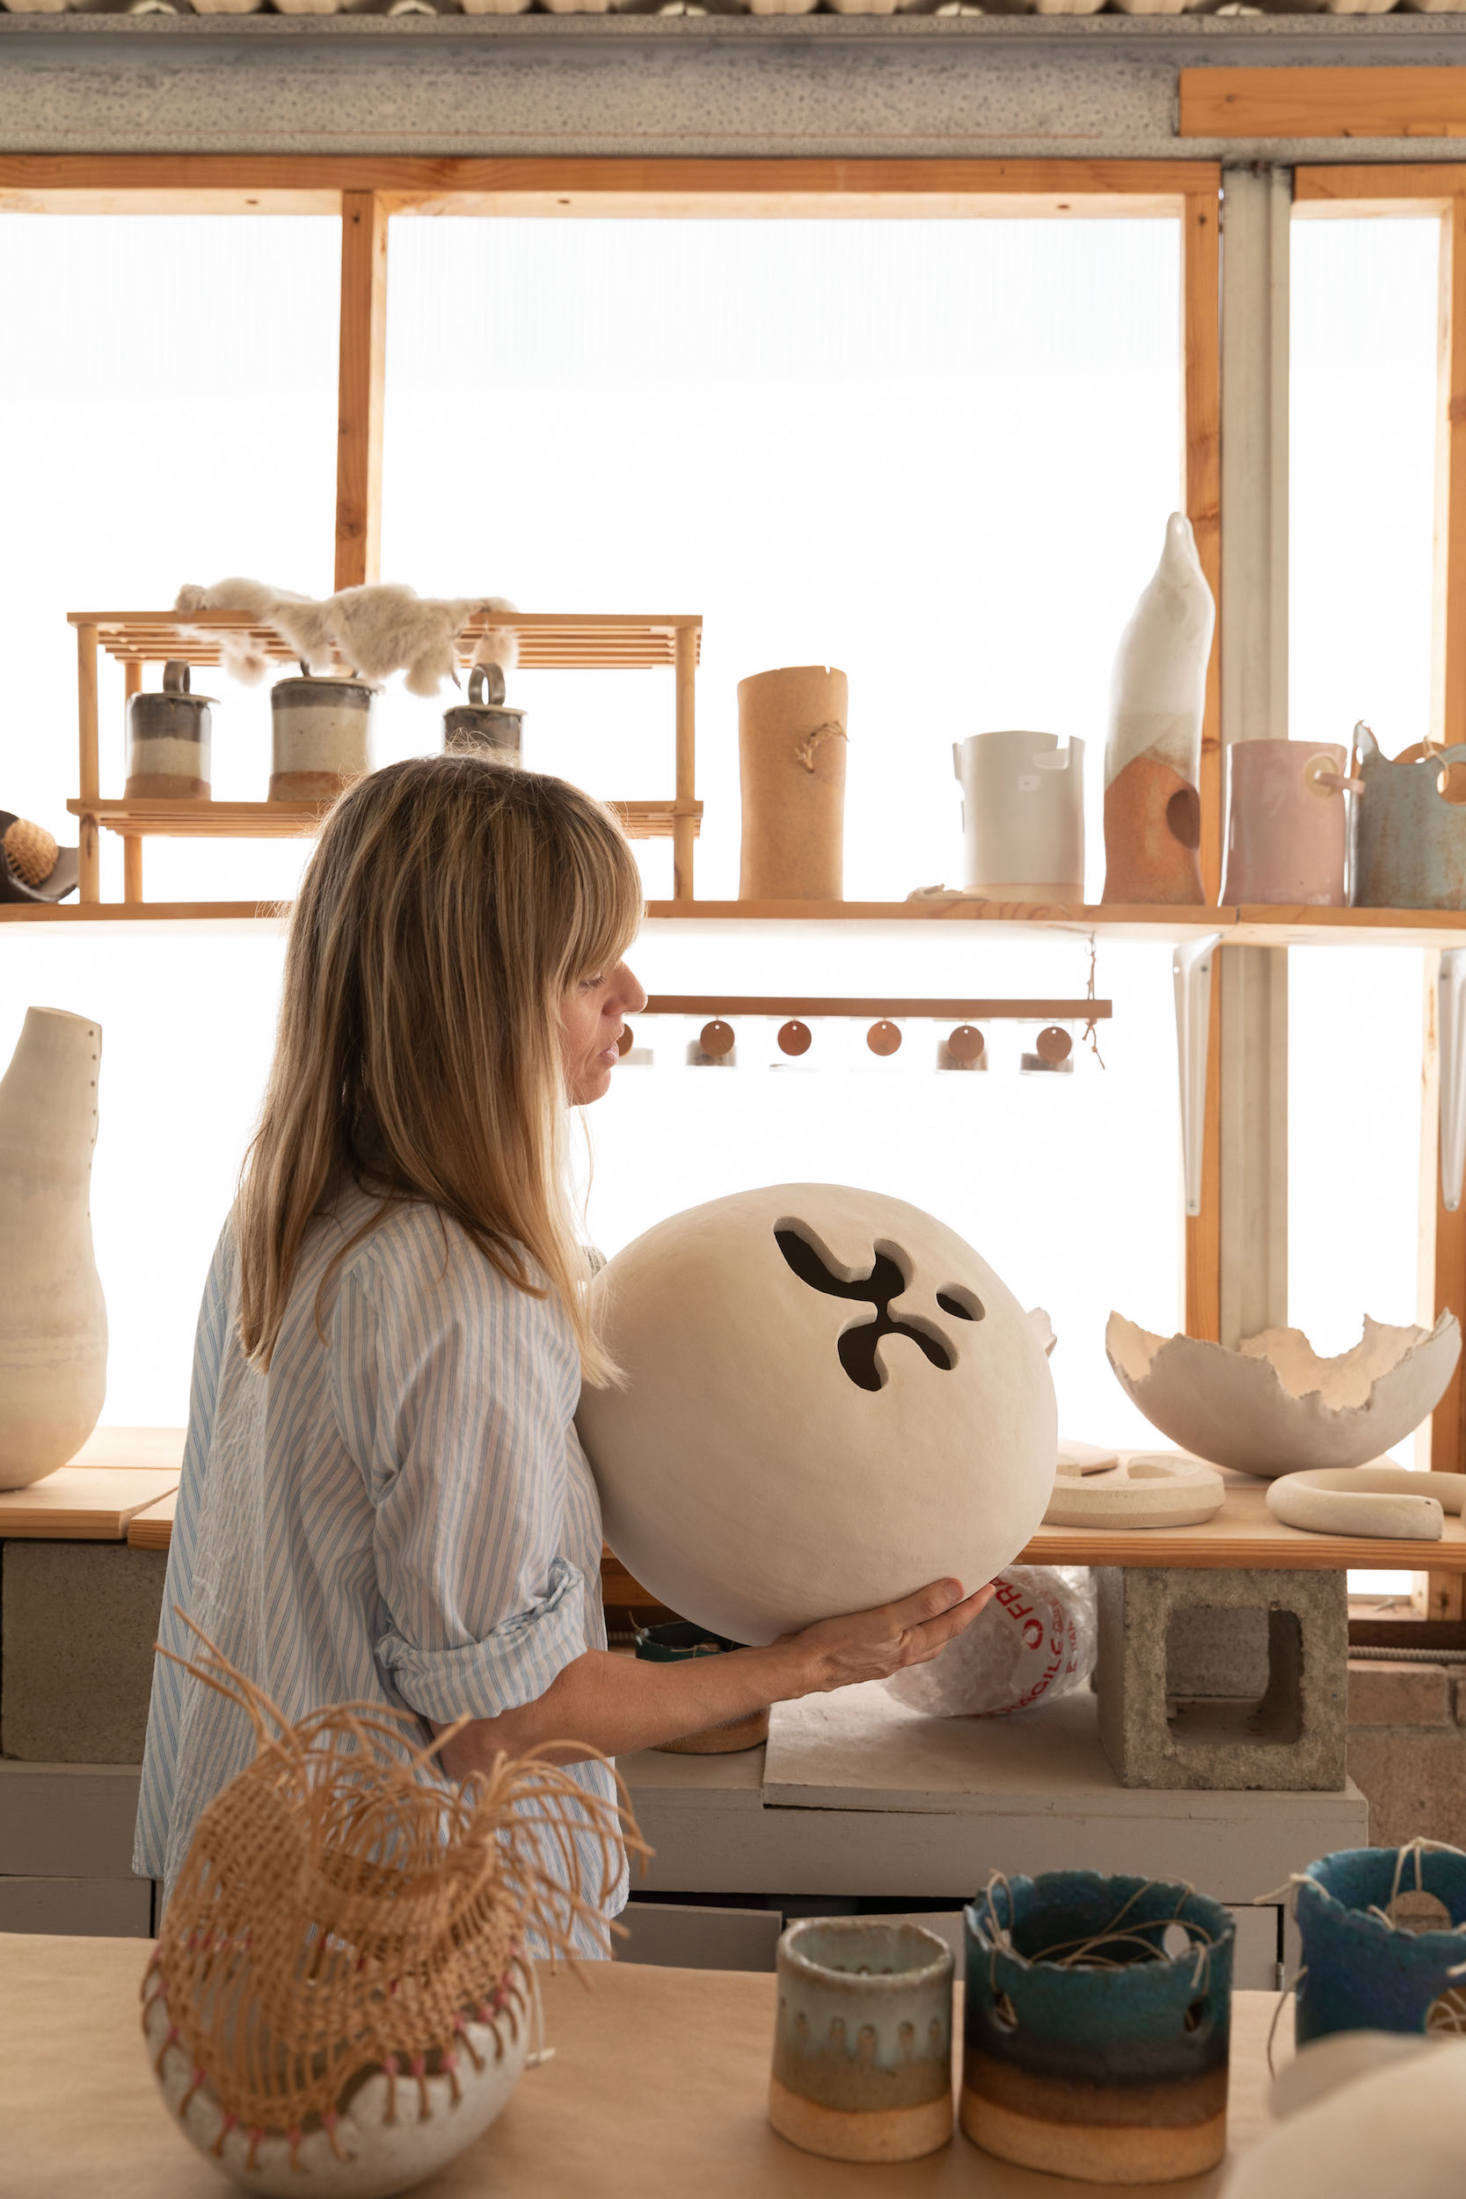 Wilkinson's pieces are available for purchase on her TWWorkshop website.